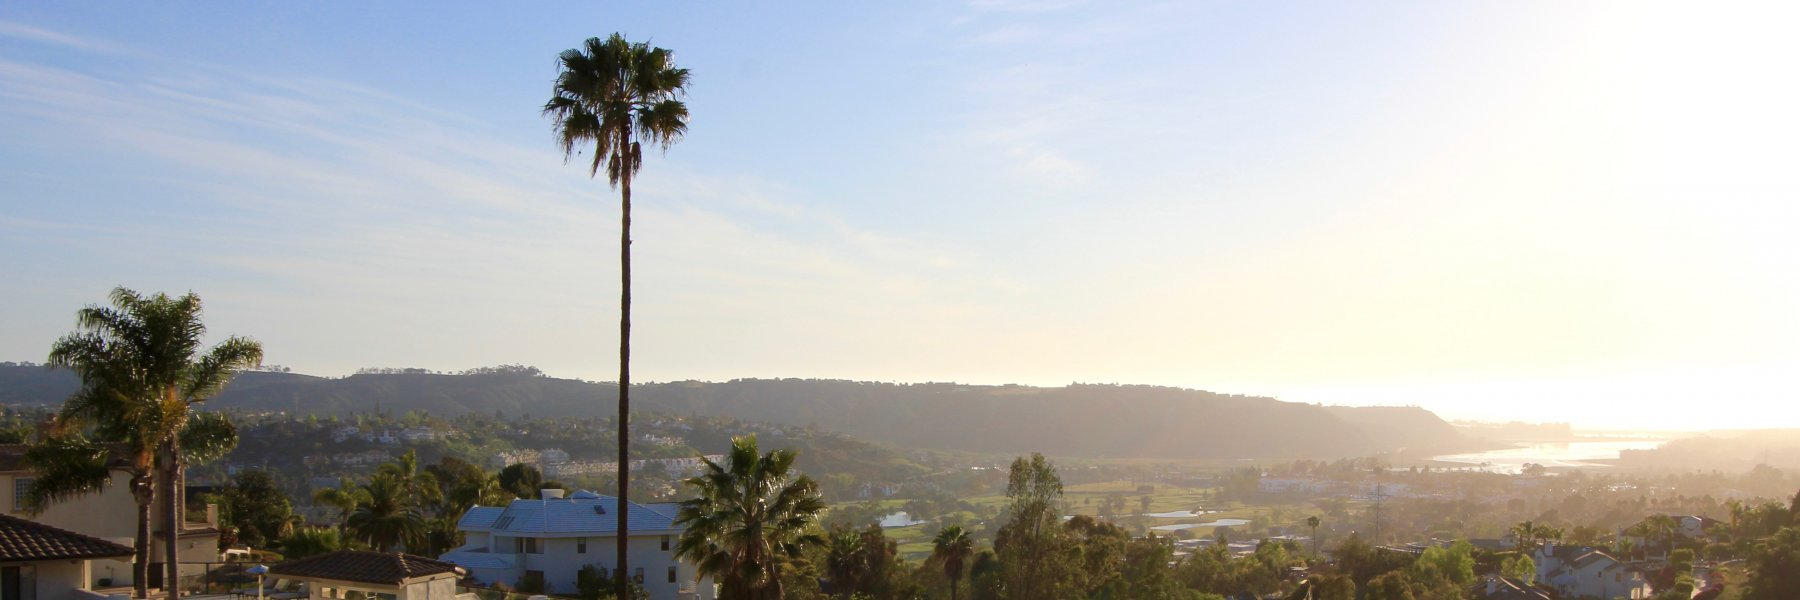 La Costa Estates is a community of homes in Carlsbad California